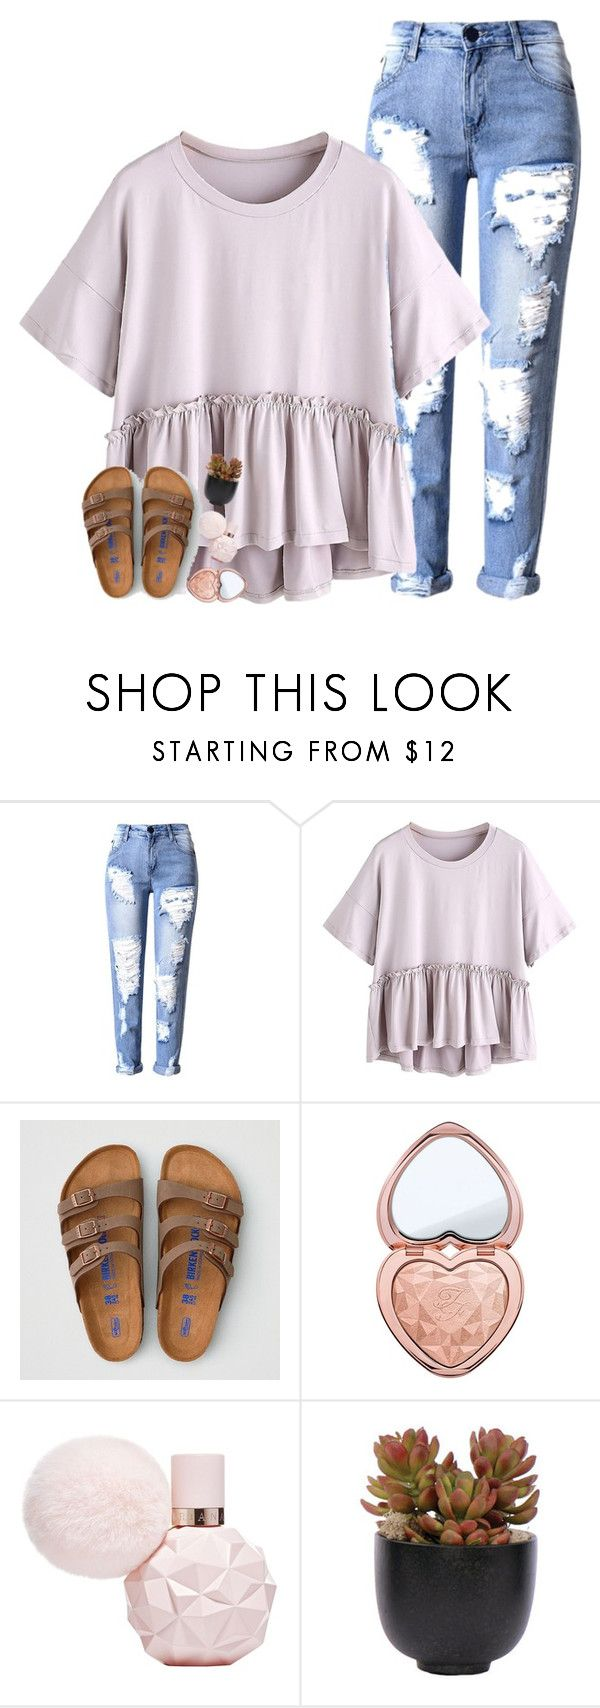 """""""lil life update🌱"""" by beingrach ❤ liked on Polyvore featuring American Eagle Outfitters, Too Faced Cosmetics, Lux-Art Silks and country"""